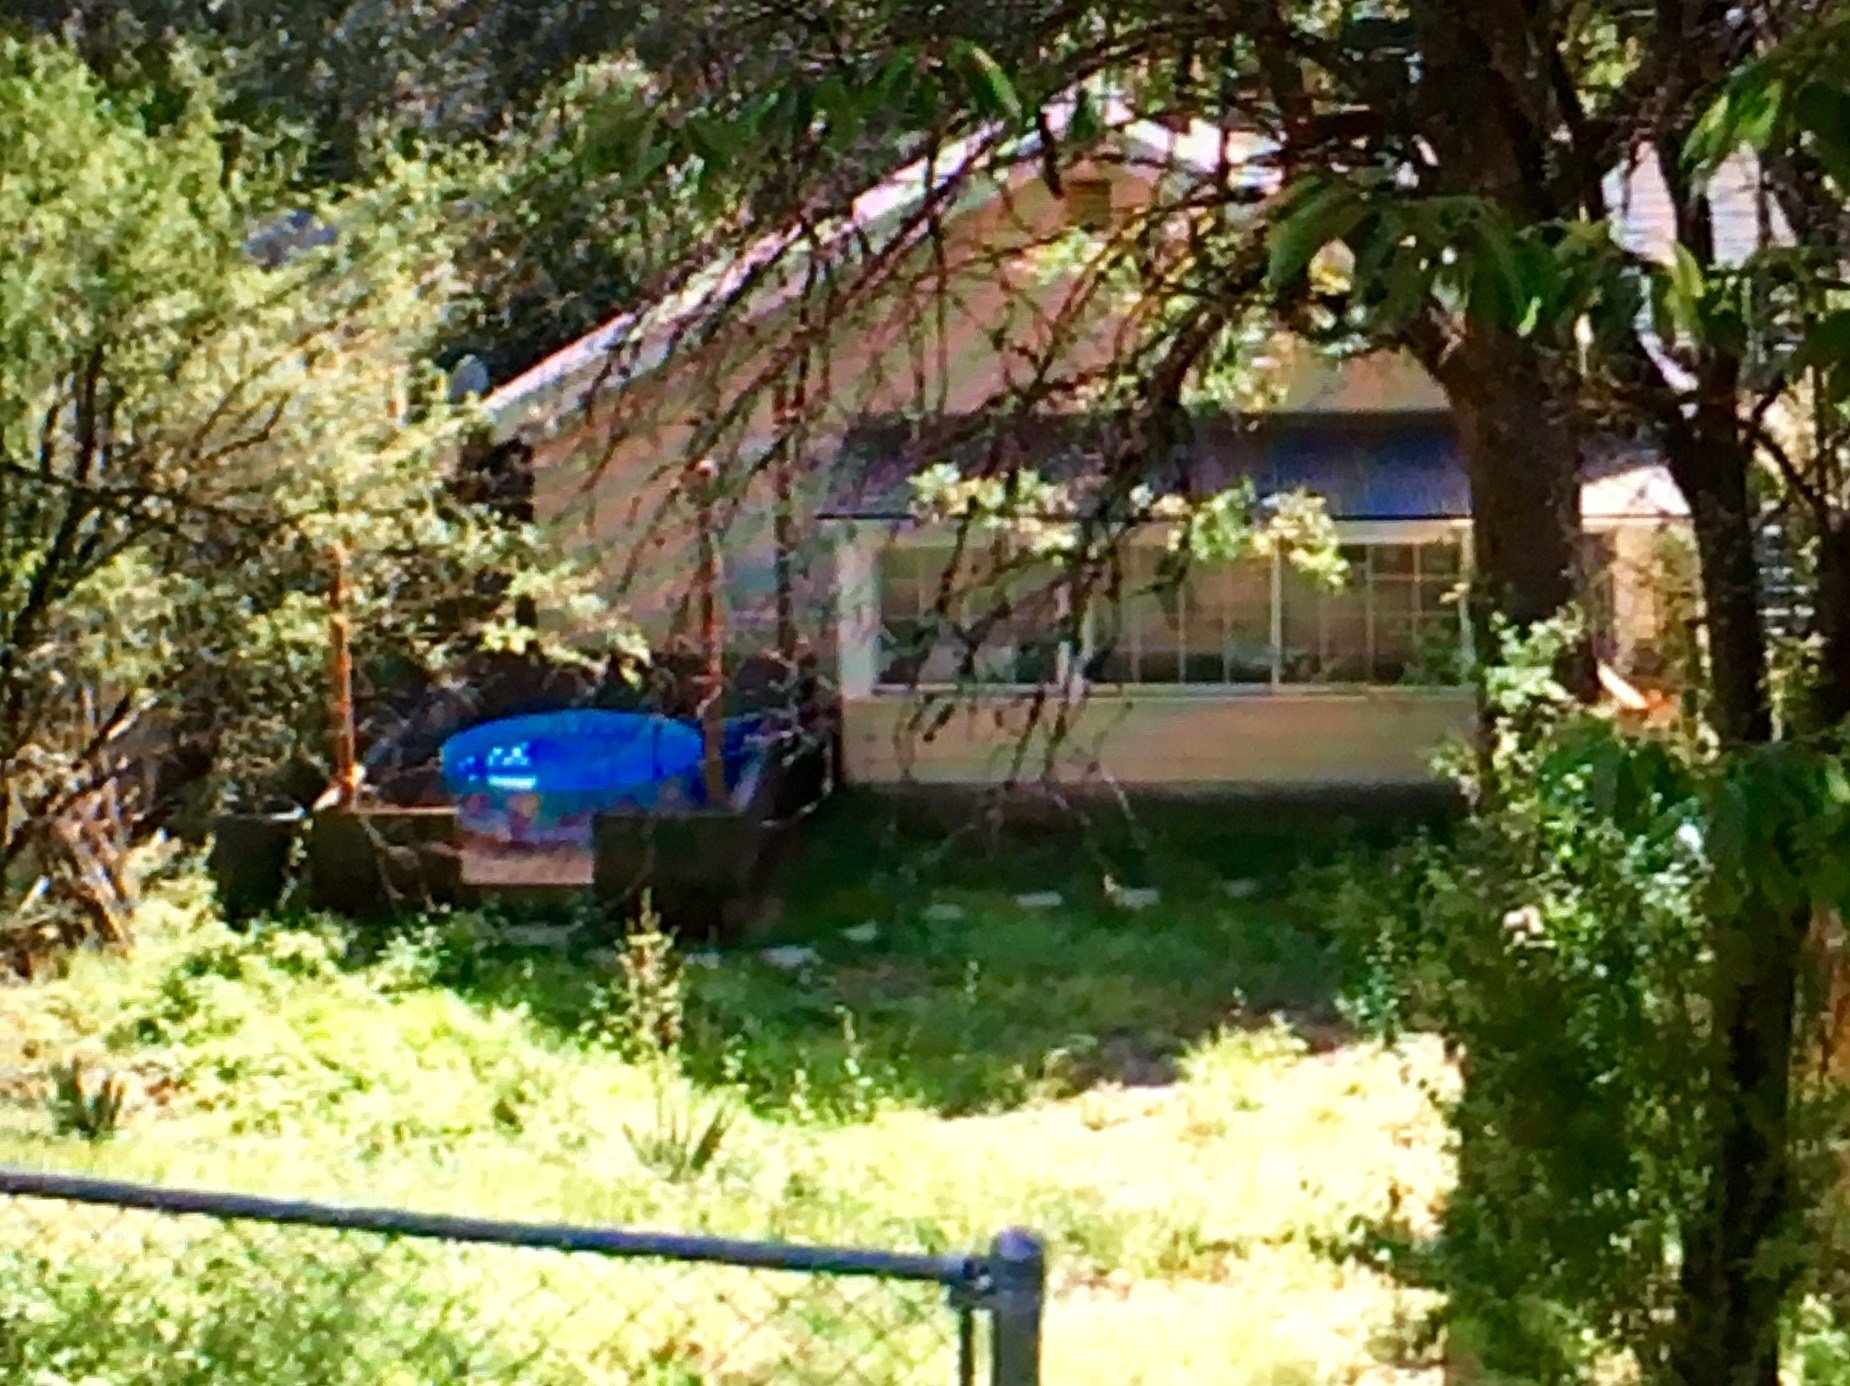 The home at the center of Monday's reported home invasion in St. Helens. (KPTV)